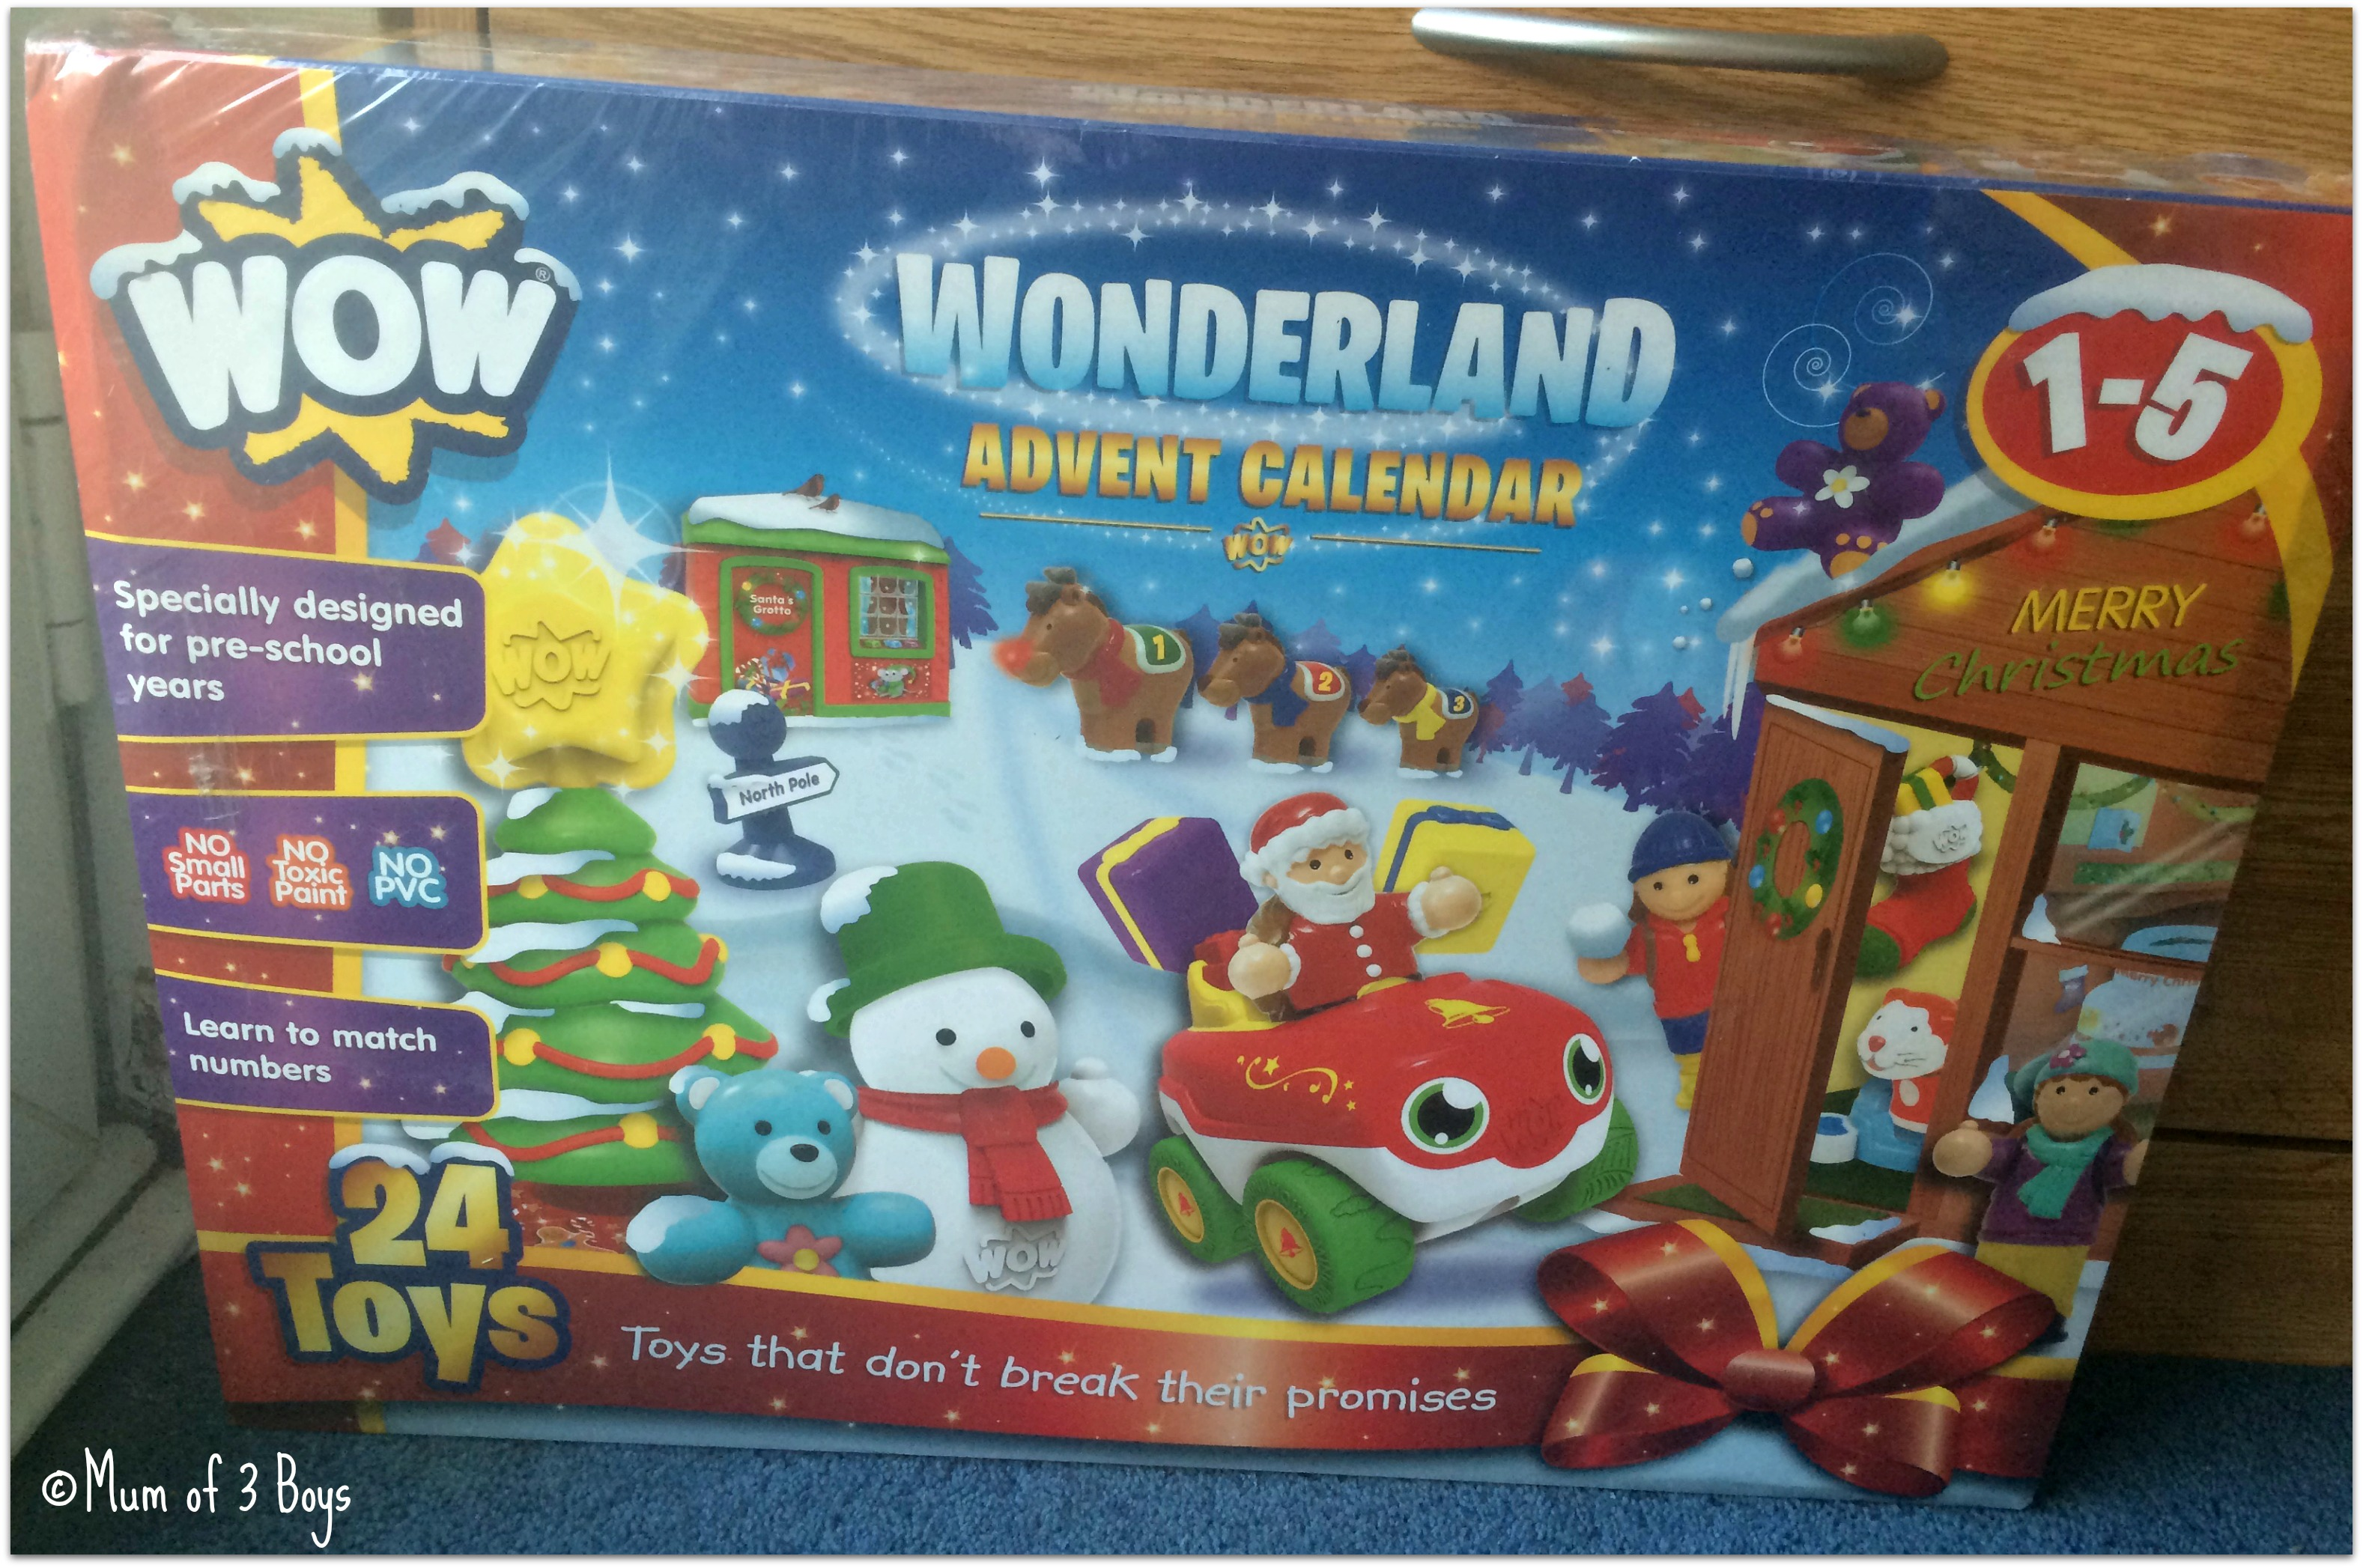 wow wounderland calender